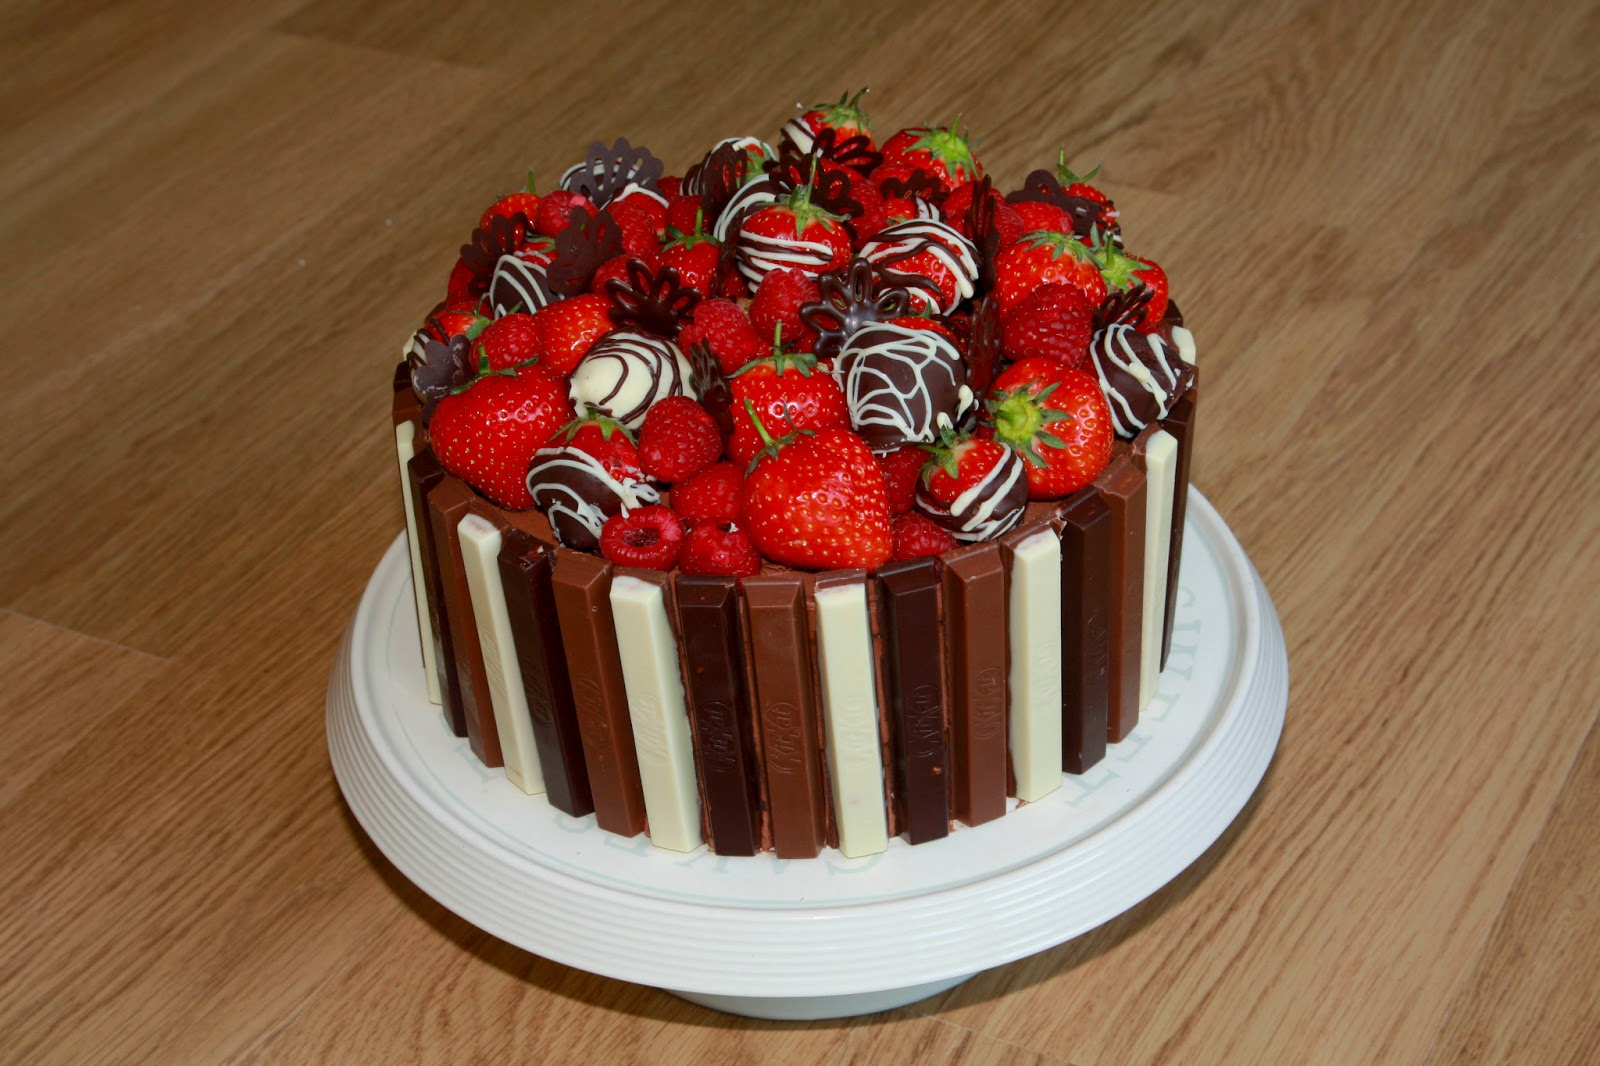 Kit Kat Cake With Chocolate Covered Strawberries